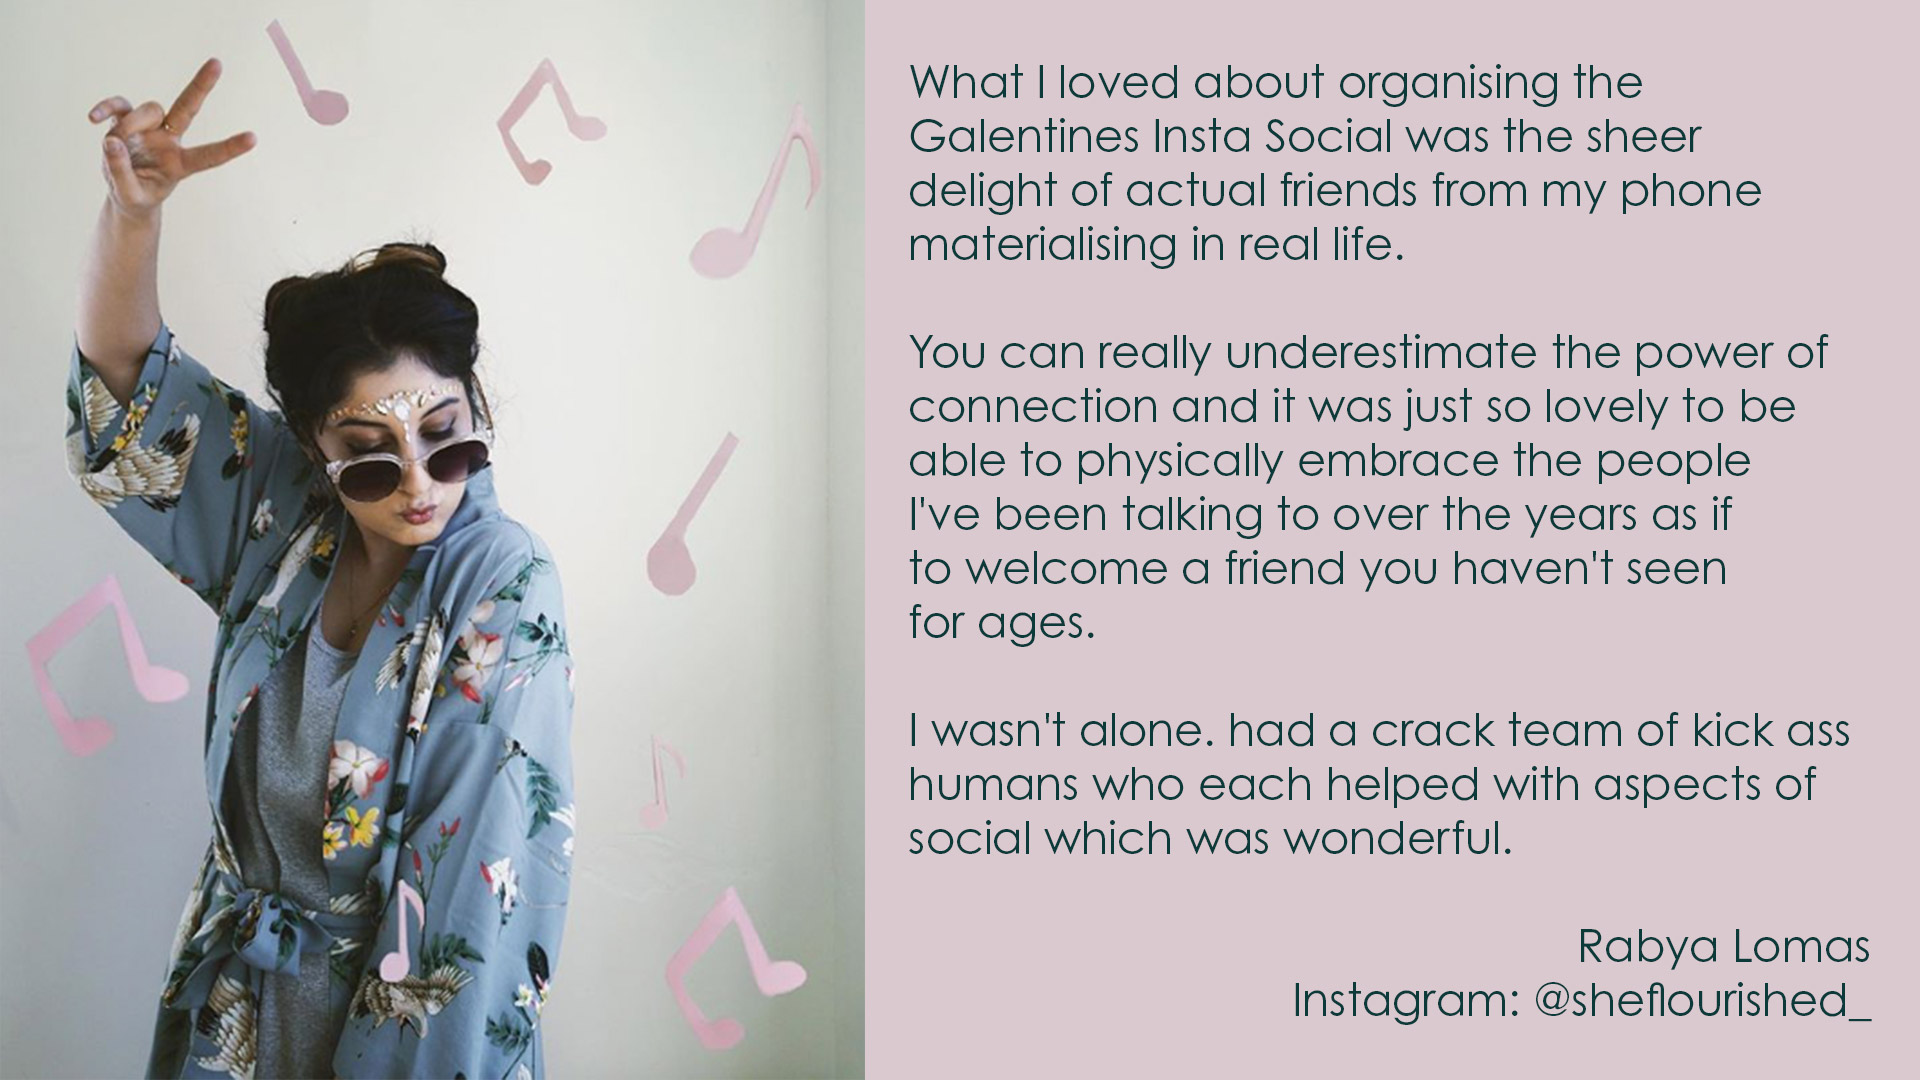 What I loved about organising the Galentines Insta Social was the sheer delight of actual friends from my phone materialising in real life. You can really underestimate the power of connection and it was just so lovely to be able to physically embrace the people i've been talking to over the years as if to welcome a friend you haven't seen for years. I wasn't alone. had a crack team of kick ass humans who each helped with aspects of social which was wonderful.